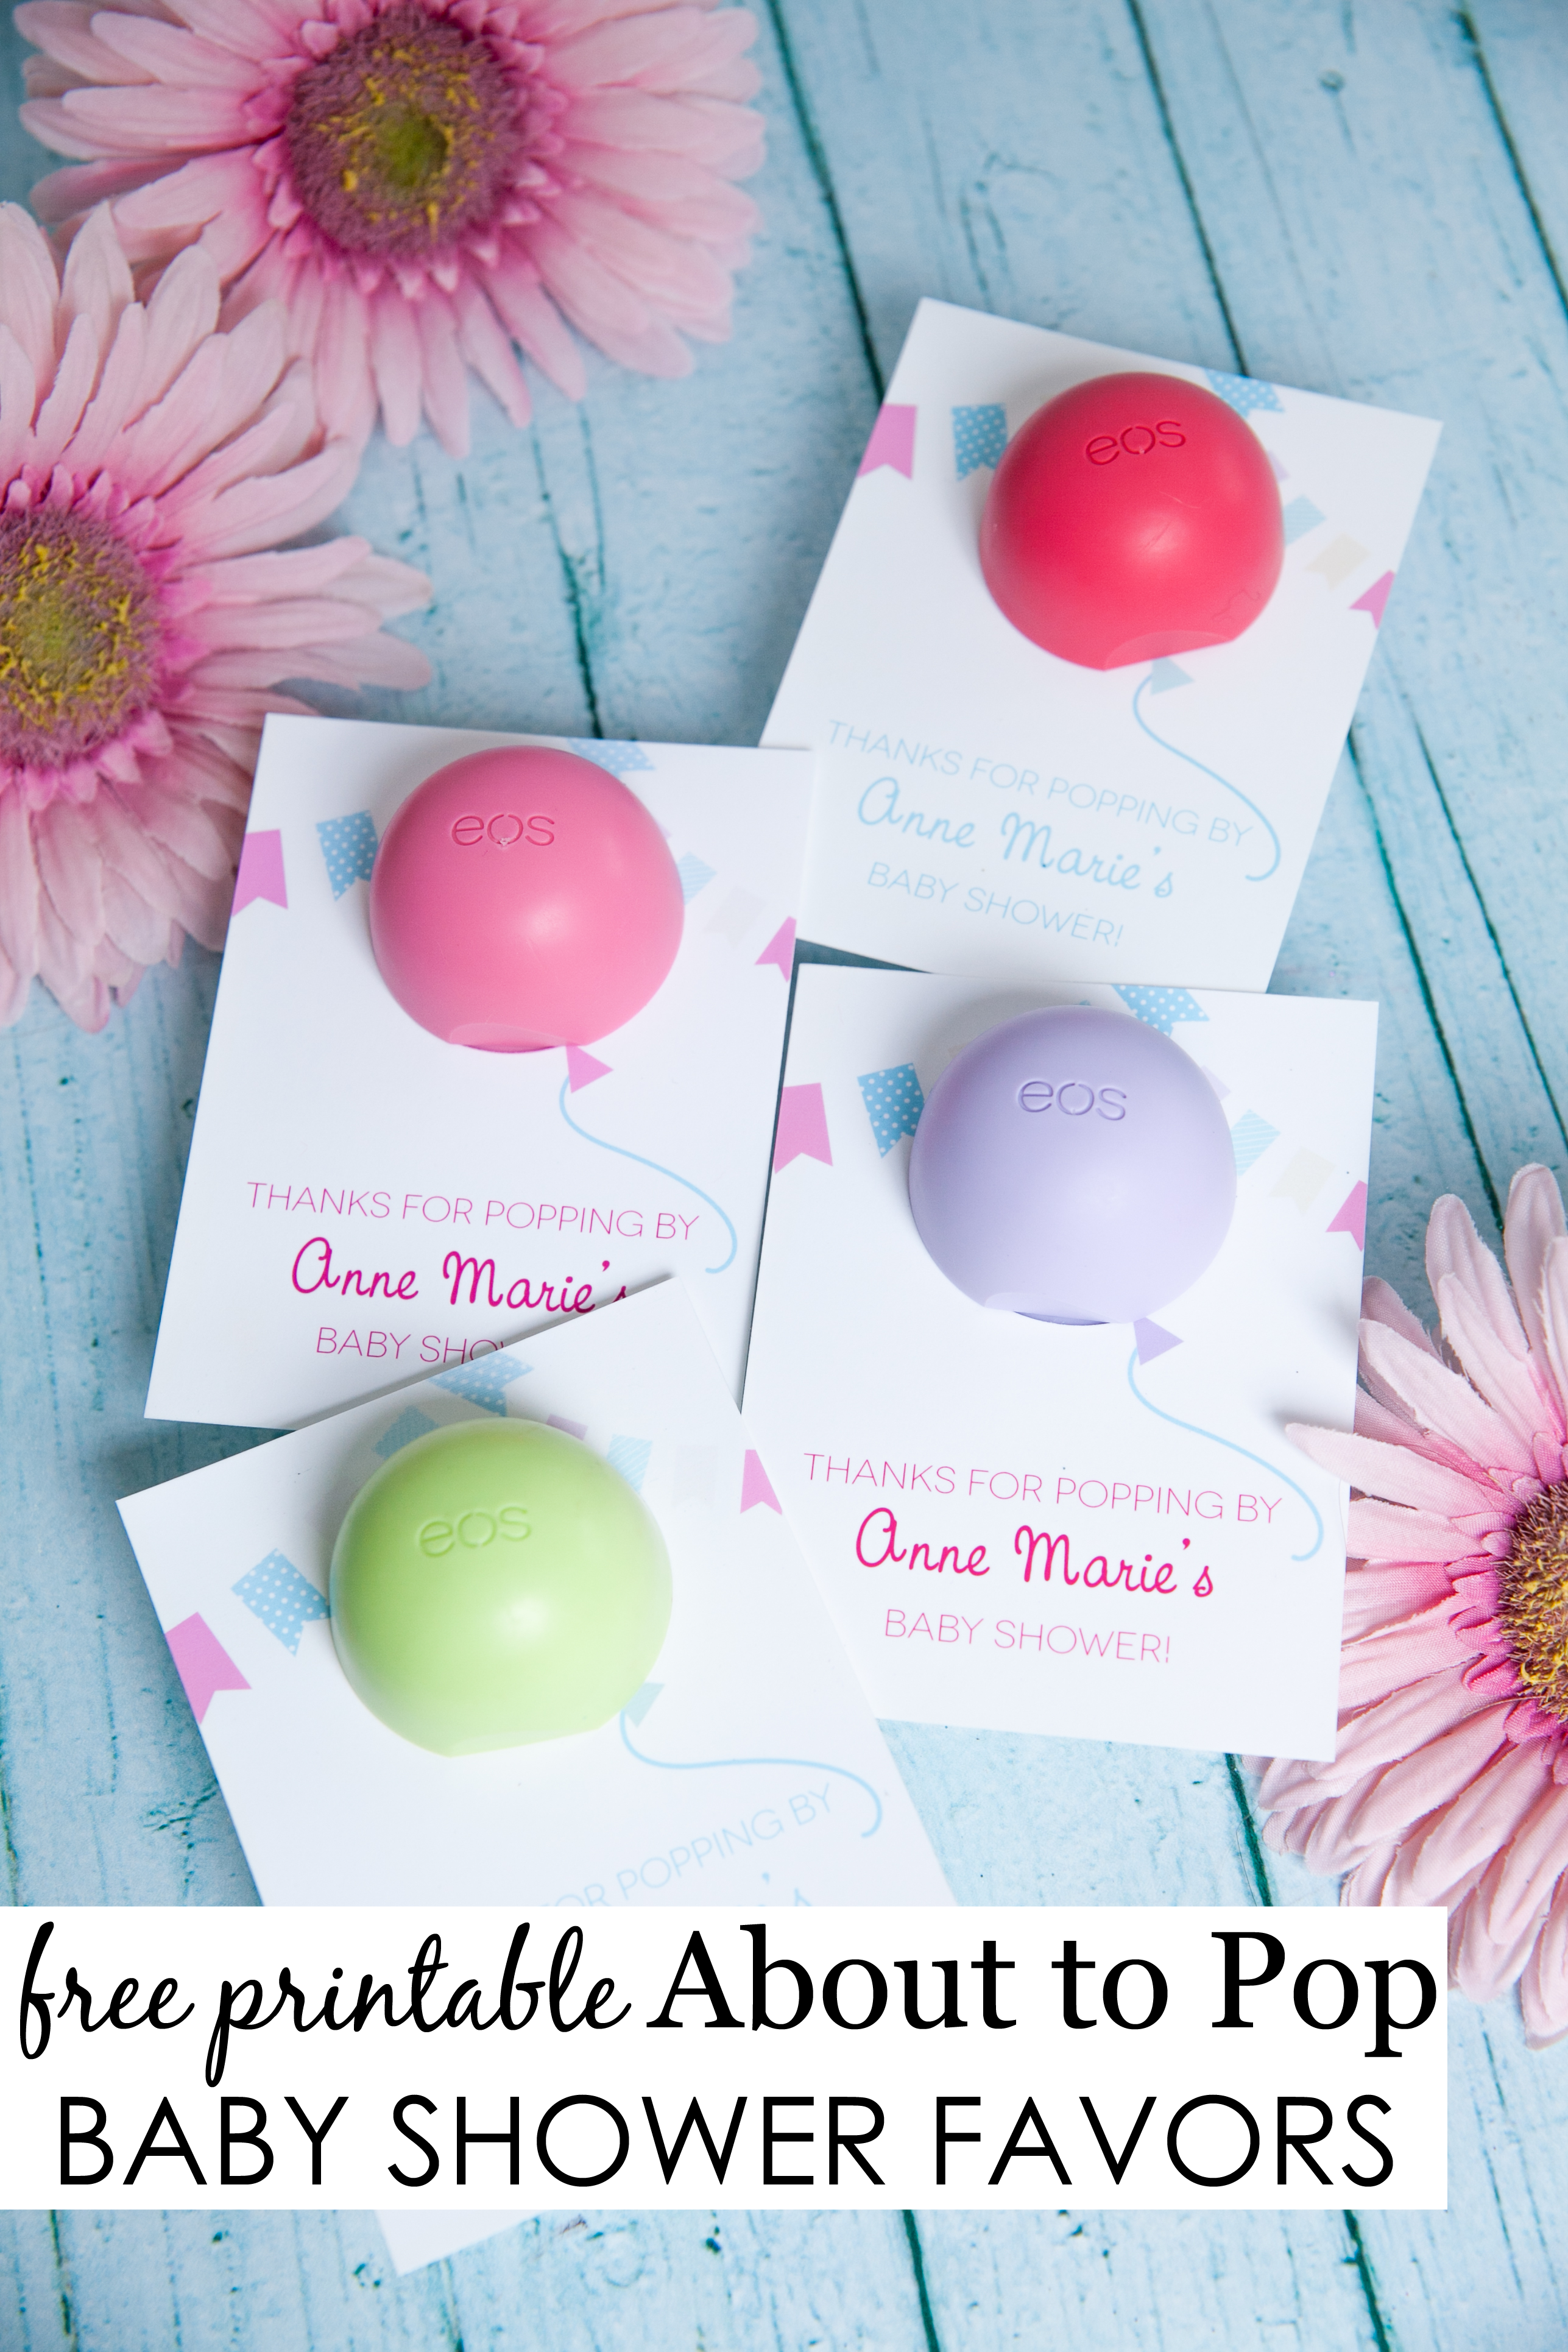 """DIY """"About to Pop"""" Baby Shower Favors with free printable - using Eos lip  balm. Too sweet!"""